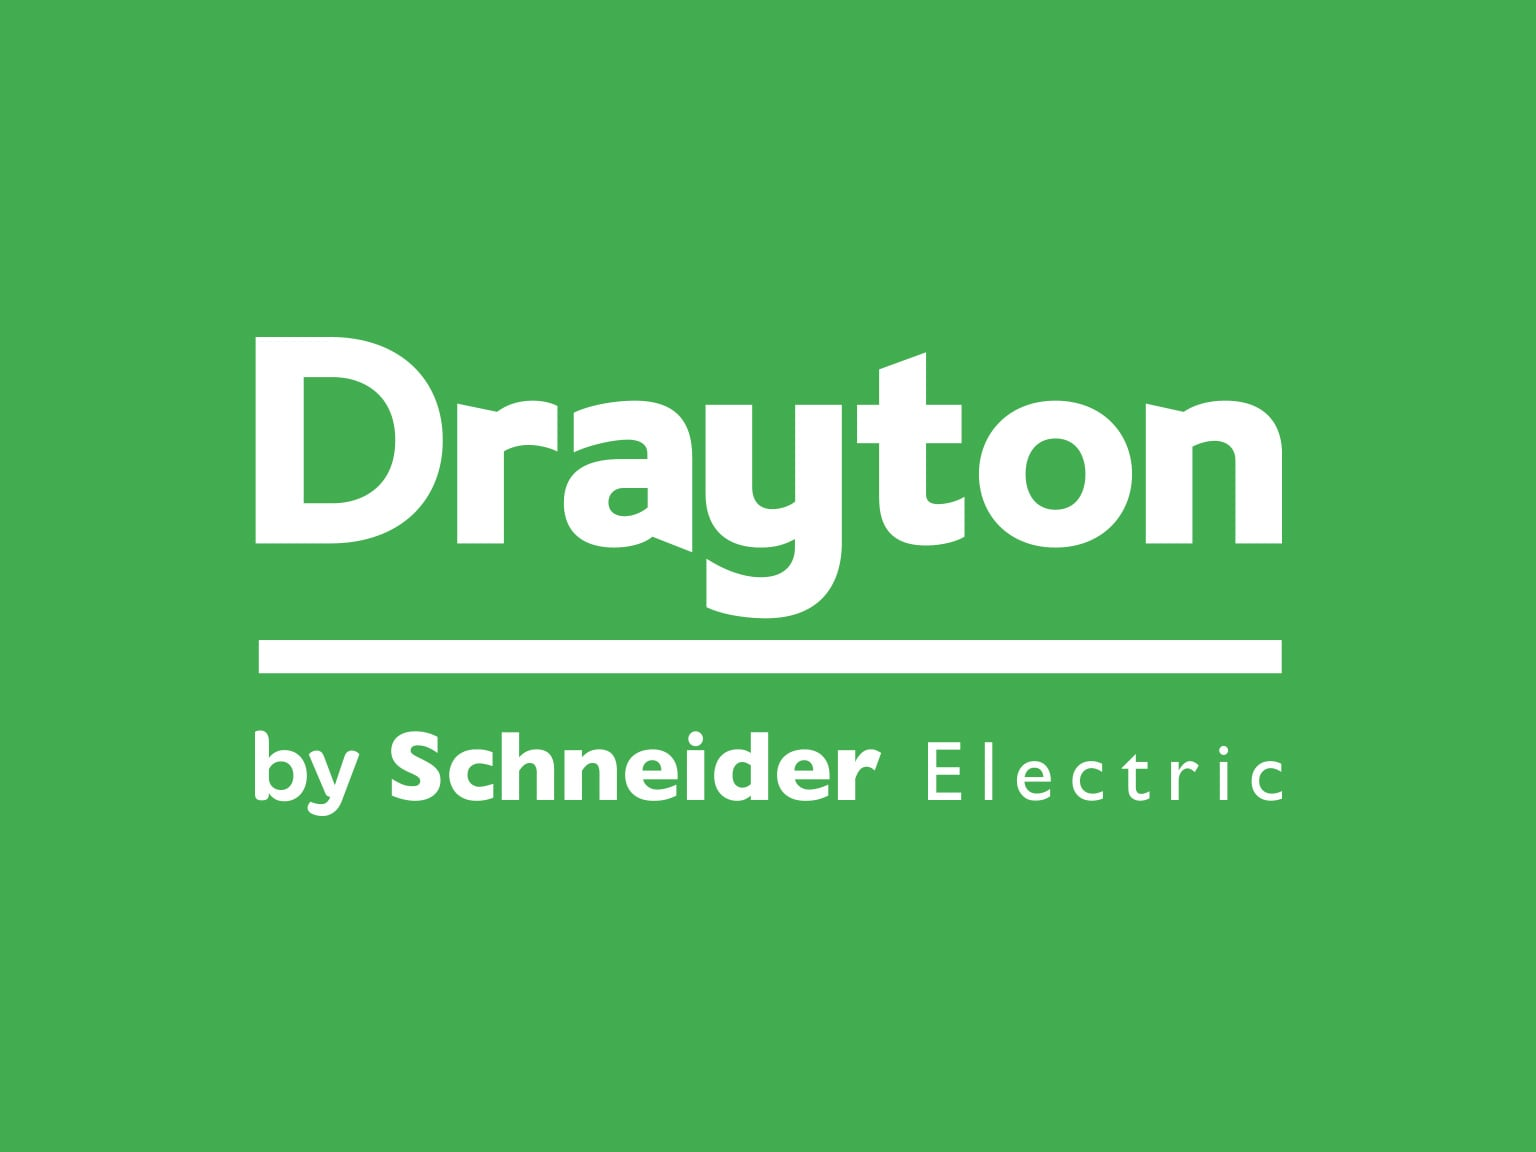 draytons case study Case study: market drayton seniors' enterprise - shropshire council's local account four pro‐active market drayton senior citizens came together in 2015, convinced that they could contribute [.